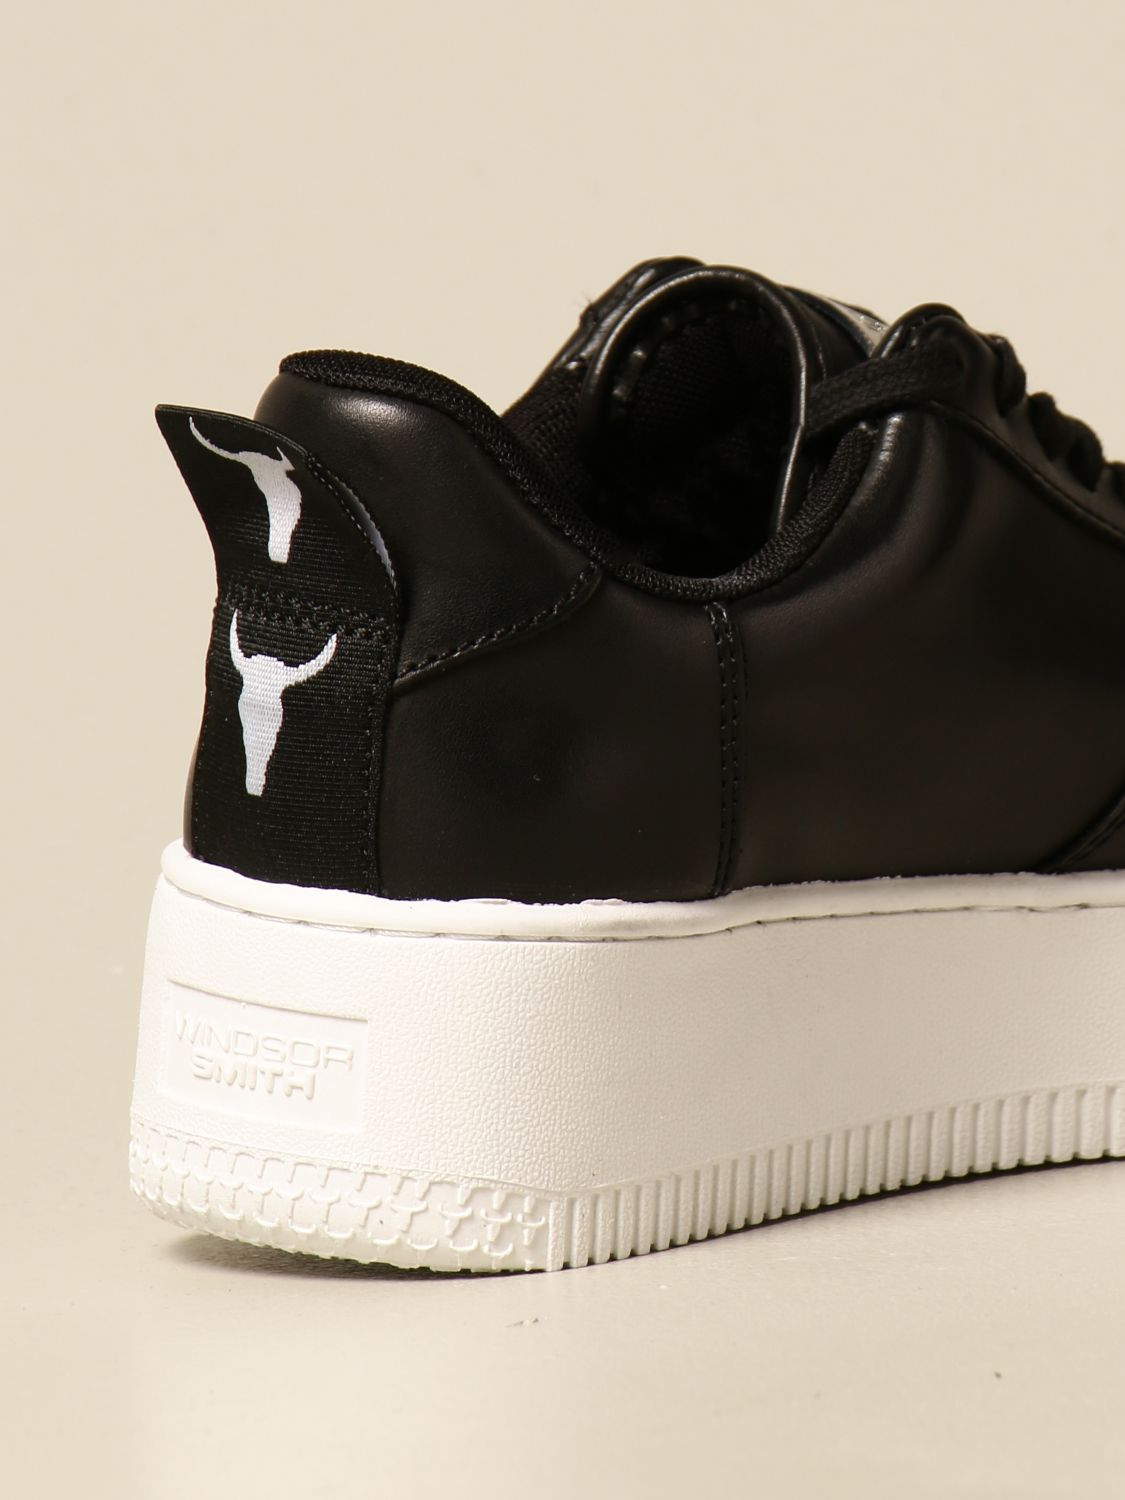 Sneakers Windsorsmith Asap: Windsorsmith sneakers in leather black 1 3